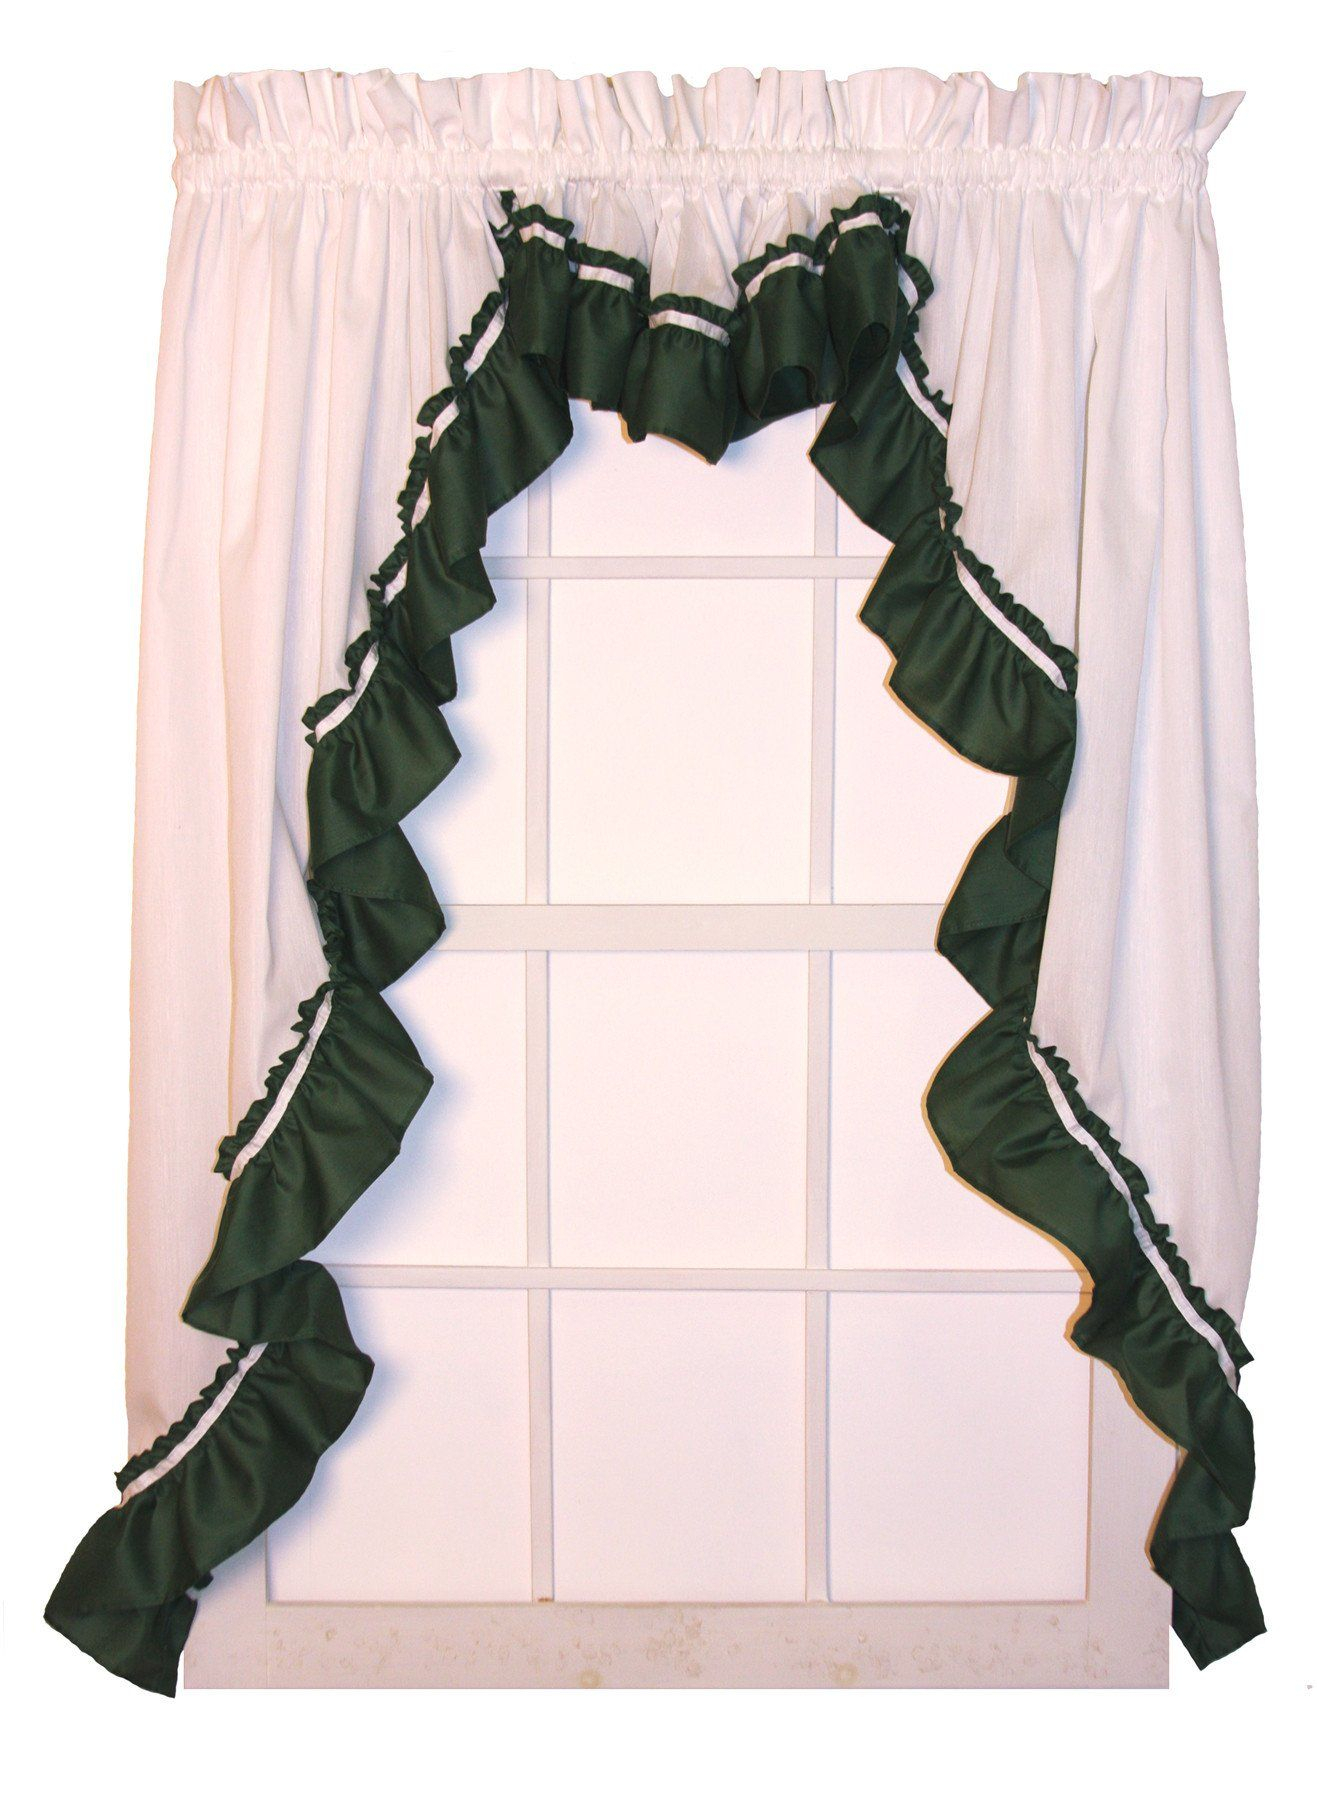 Lynn 3 Piece White Ruffled Swags & Filler Valance Window With Regard To Spring Daisy Tiered Curtain 3 Piece Sets (View 14 of 20)